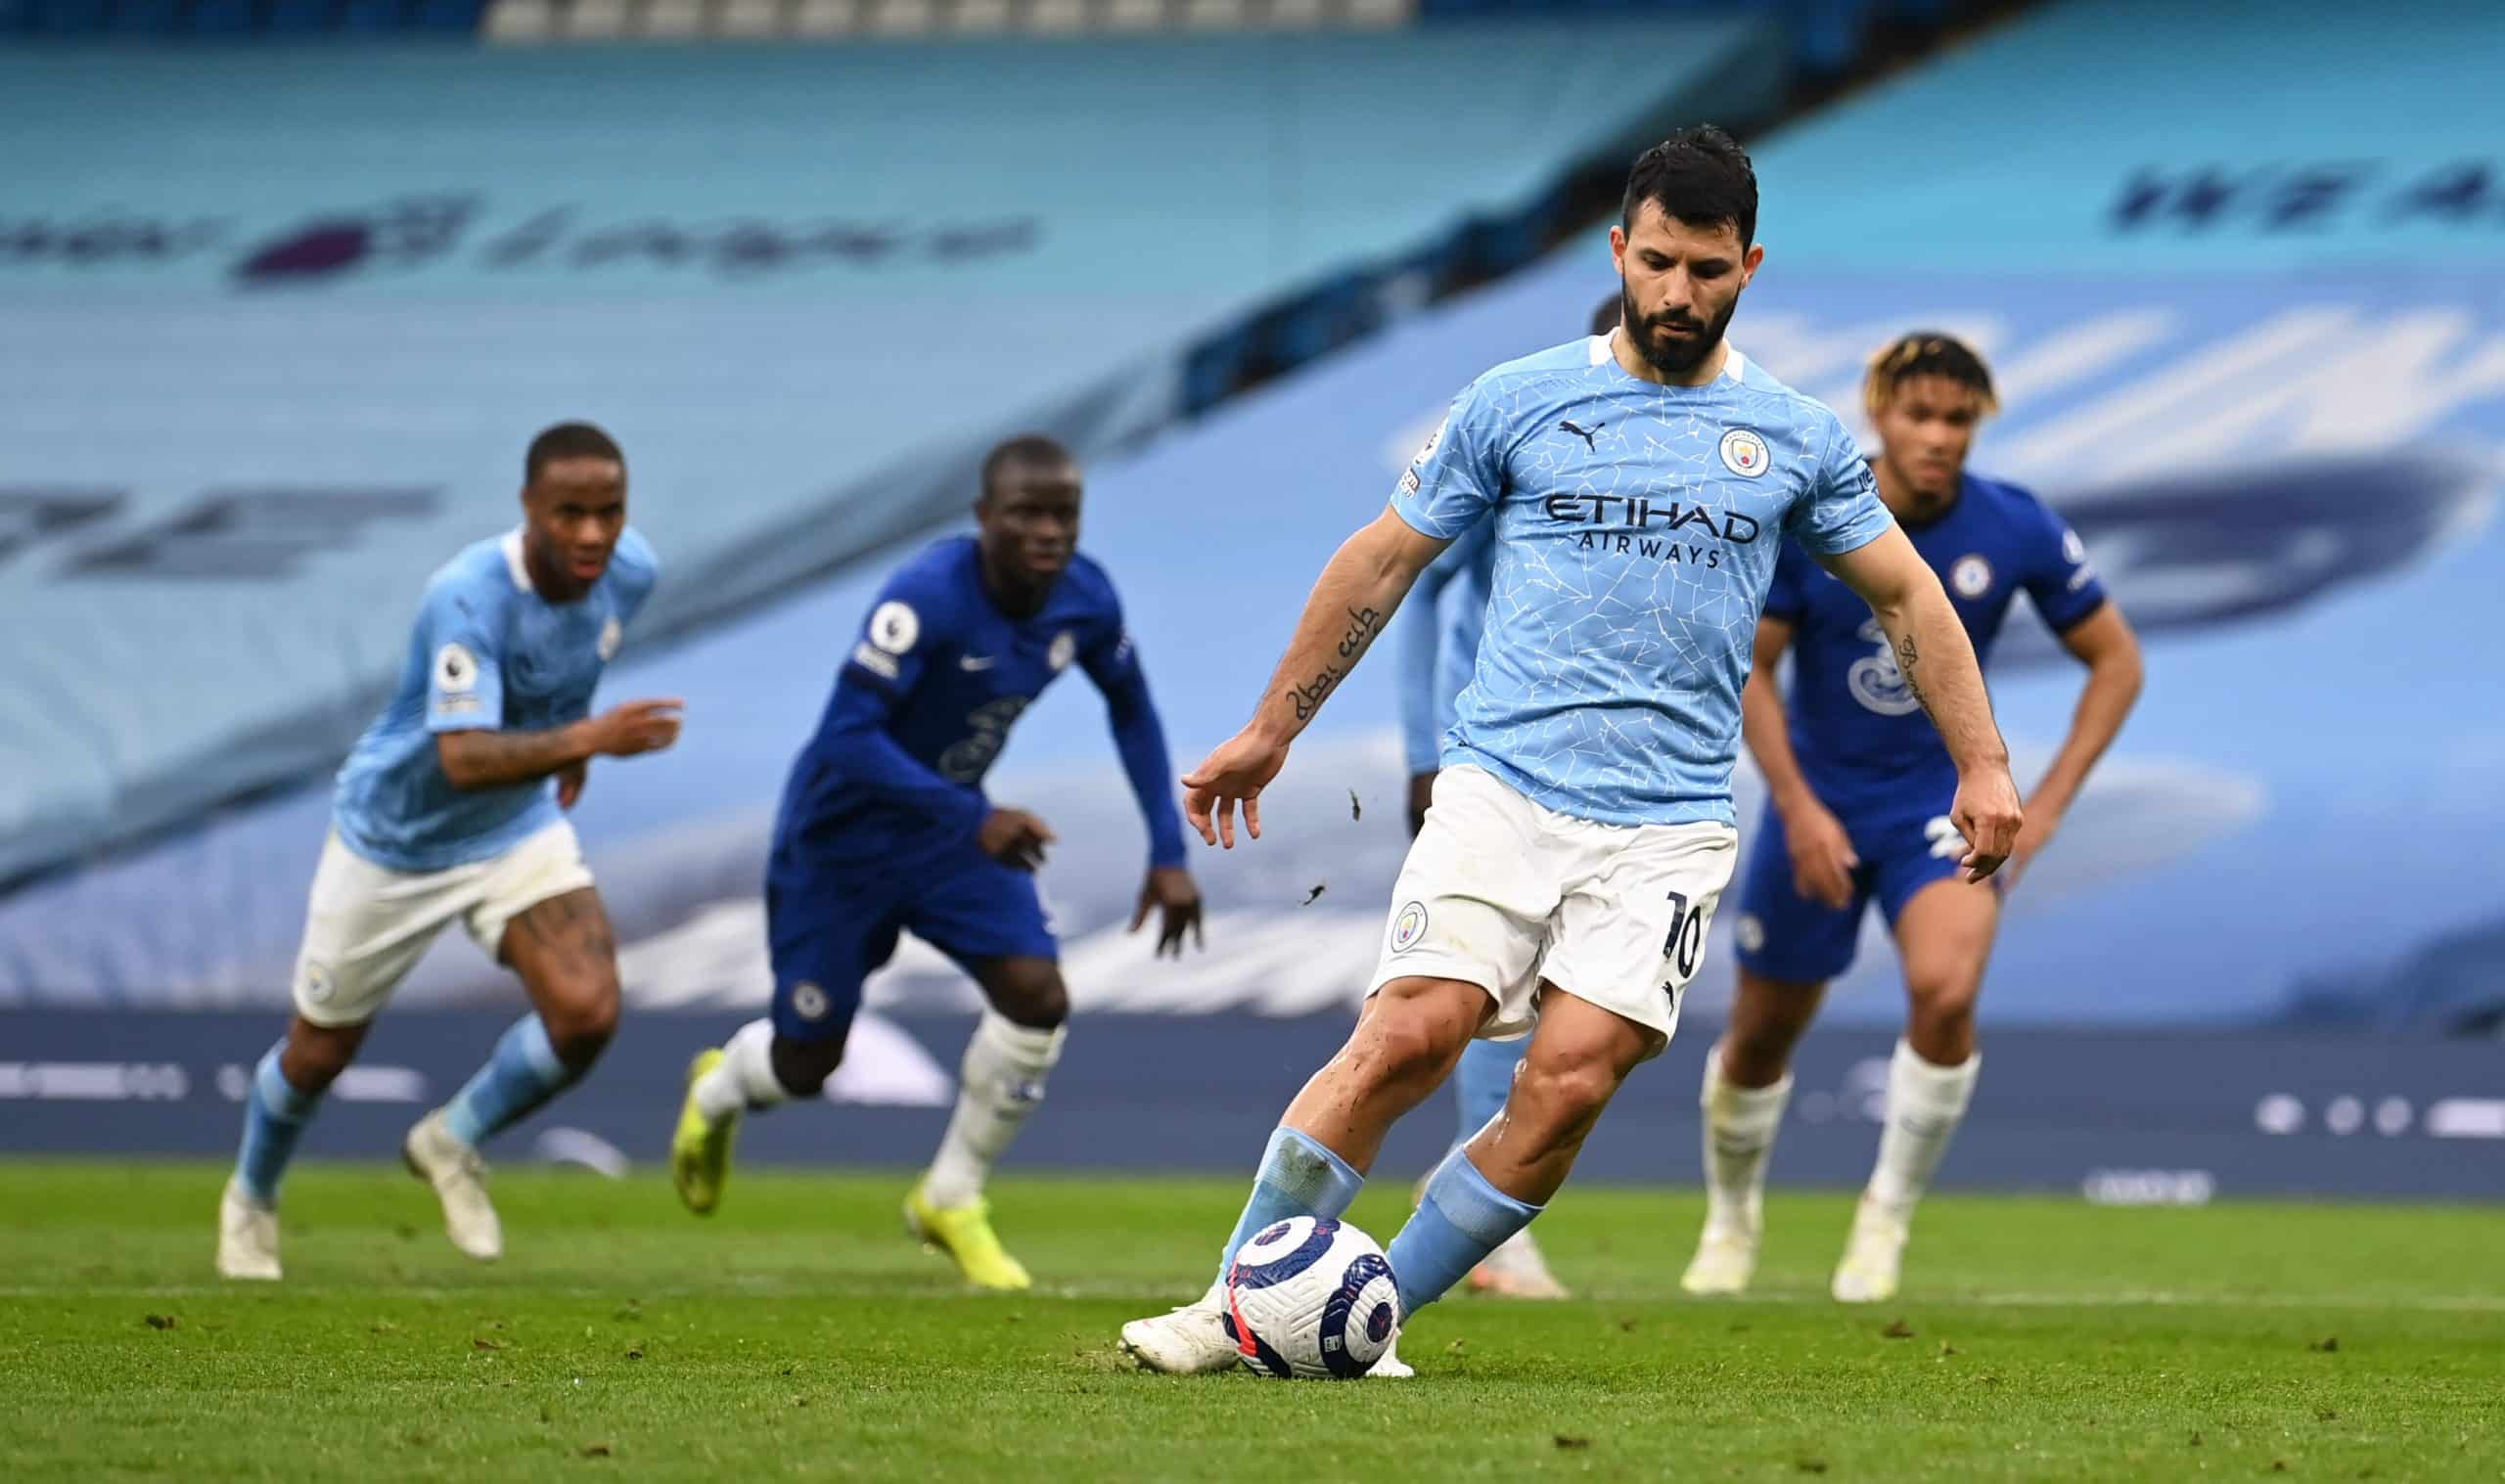 Brighton & Hove Albion vs Manchester City betting tips: Preview, predictions & odds